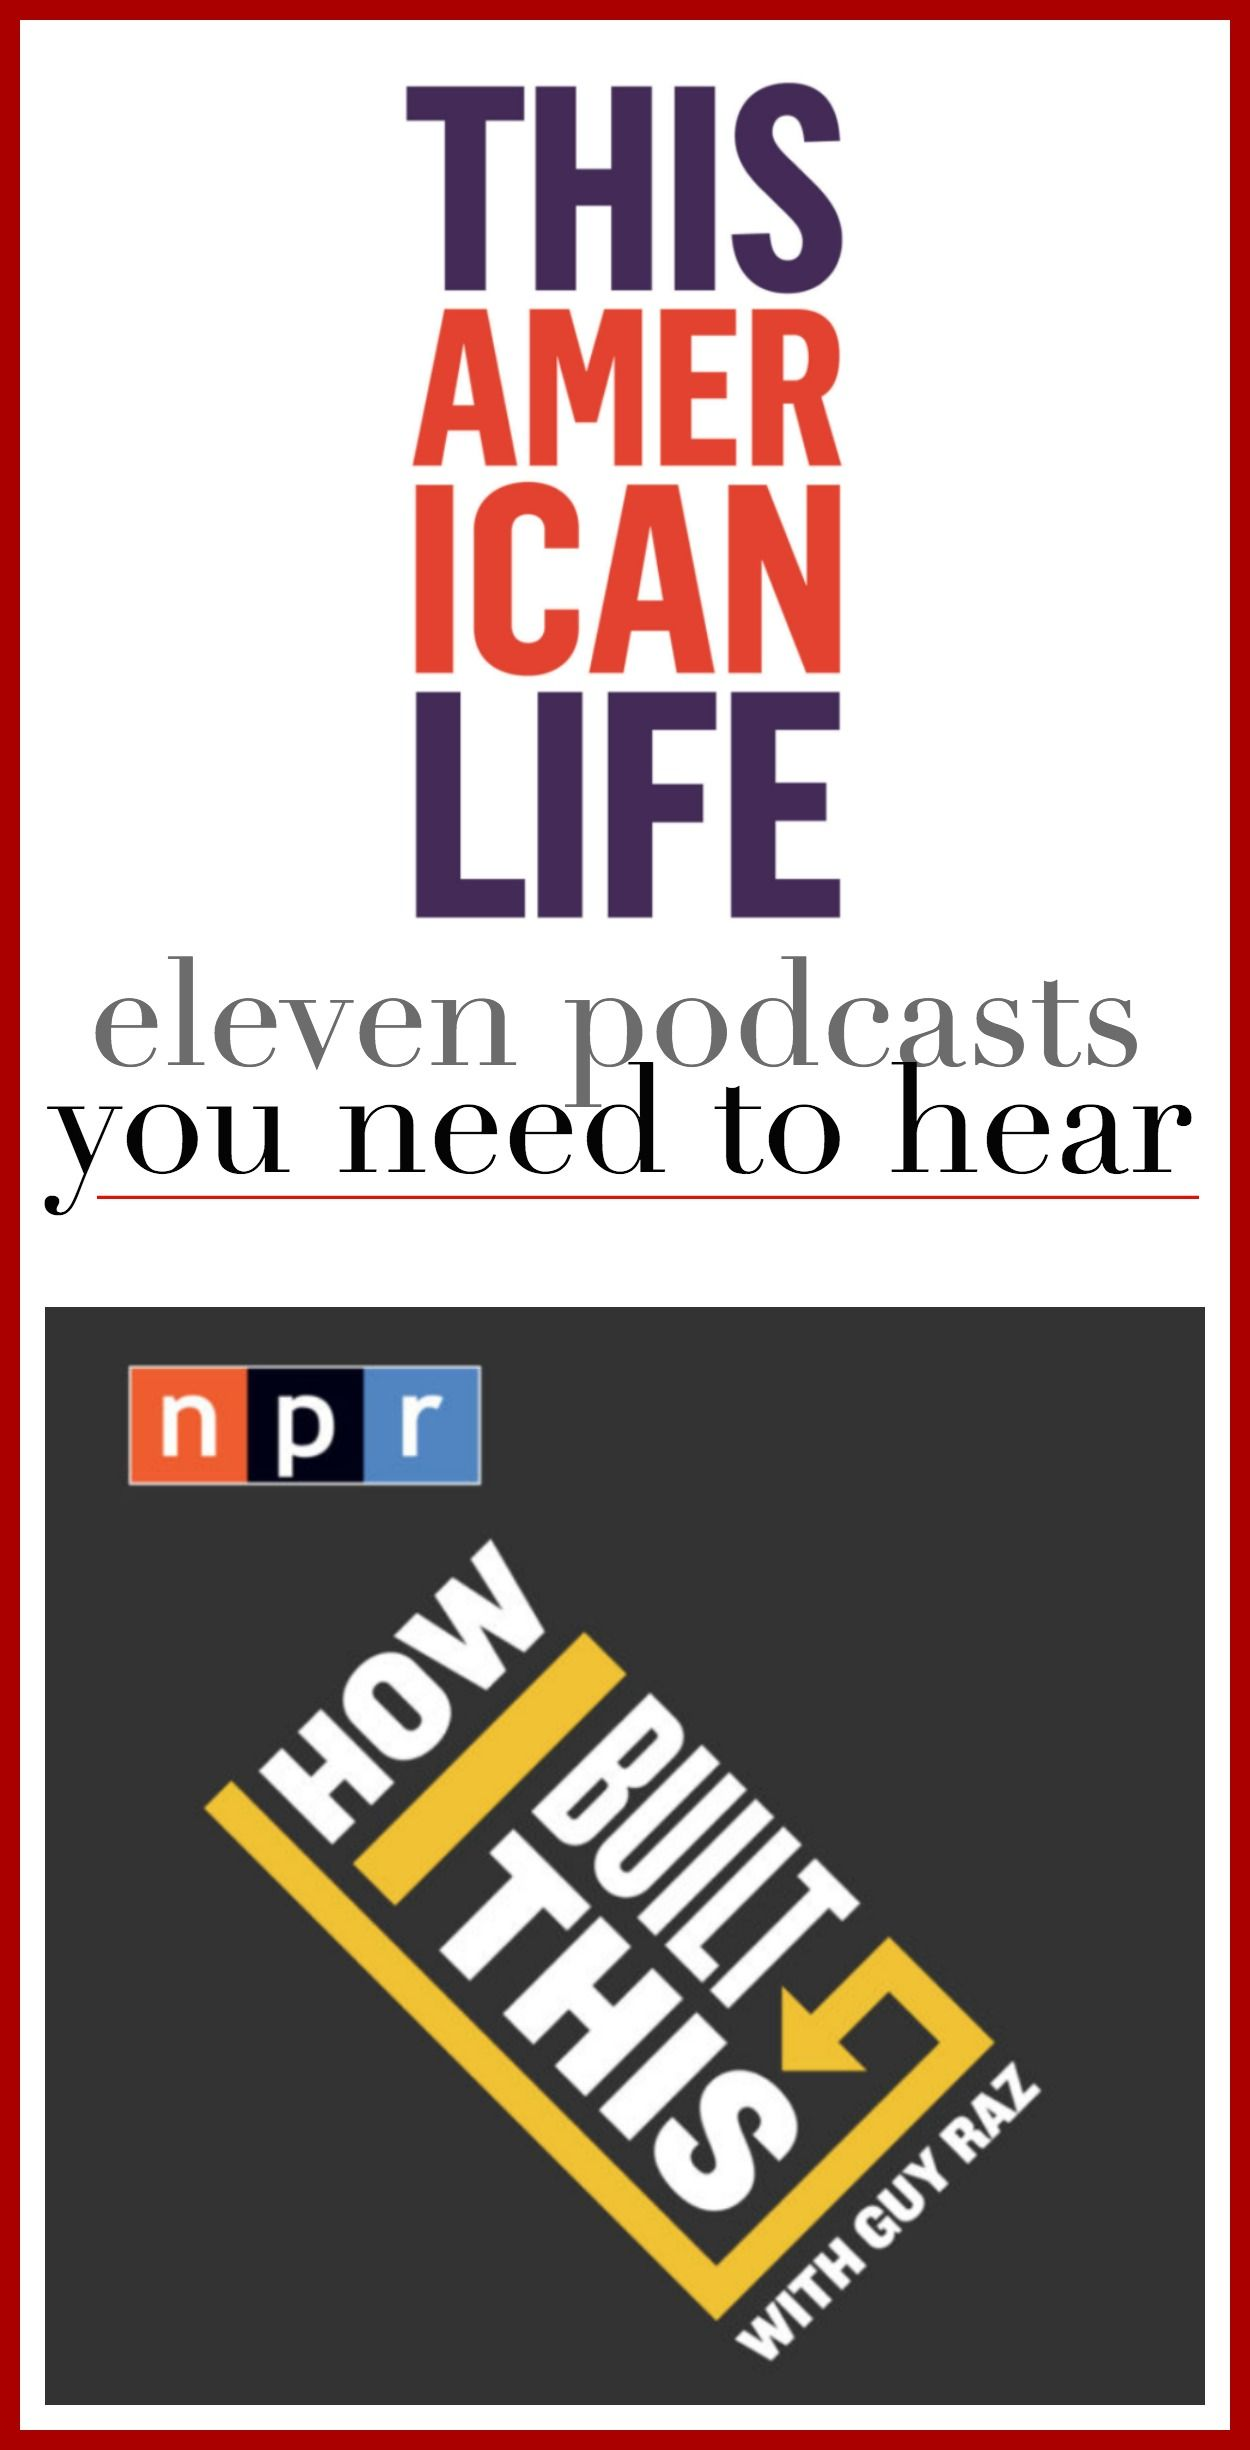 Best podcasts of all time